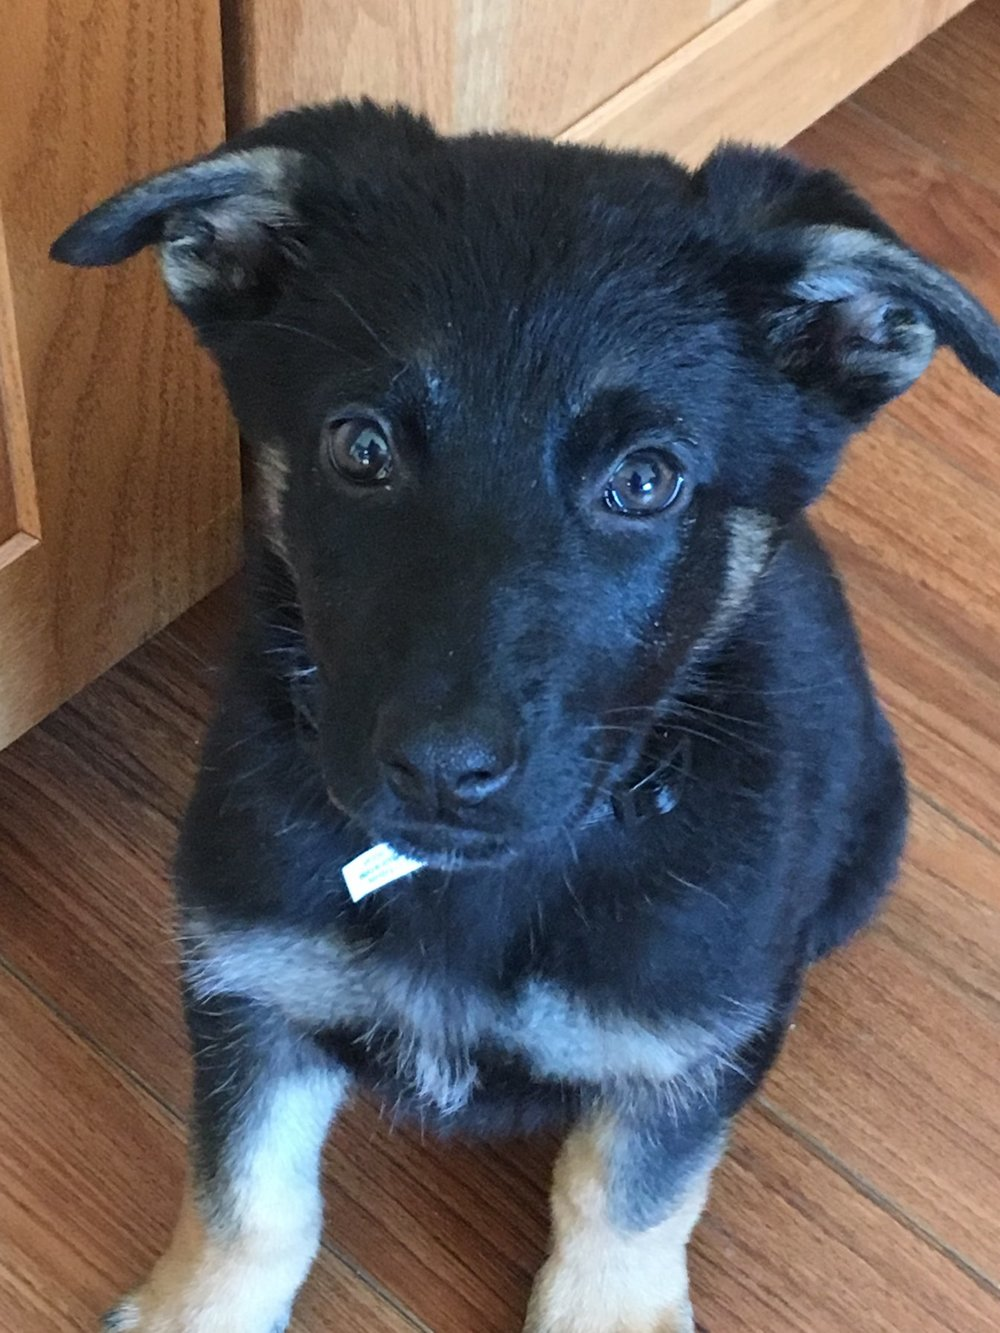 Sigi as a puppy! One of the first photos we ever took of her!